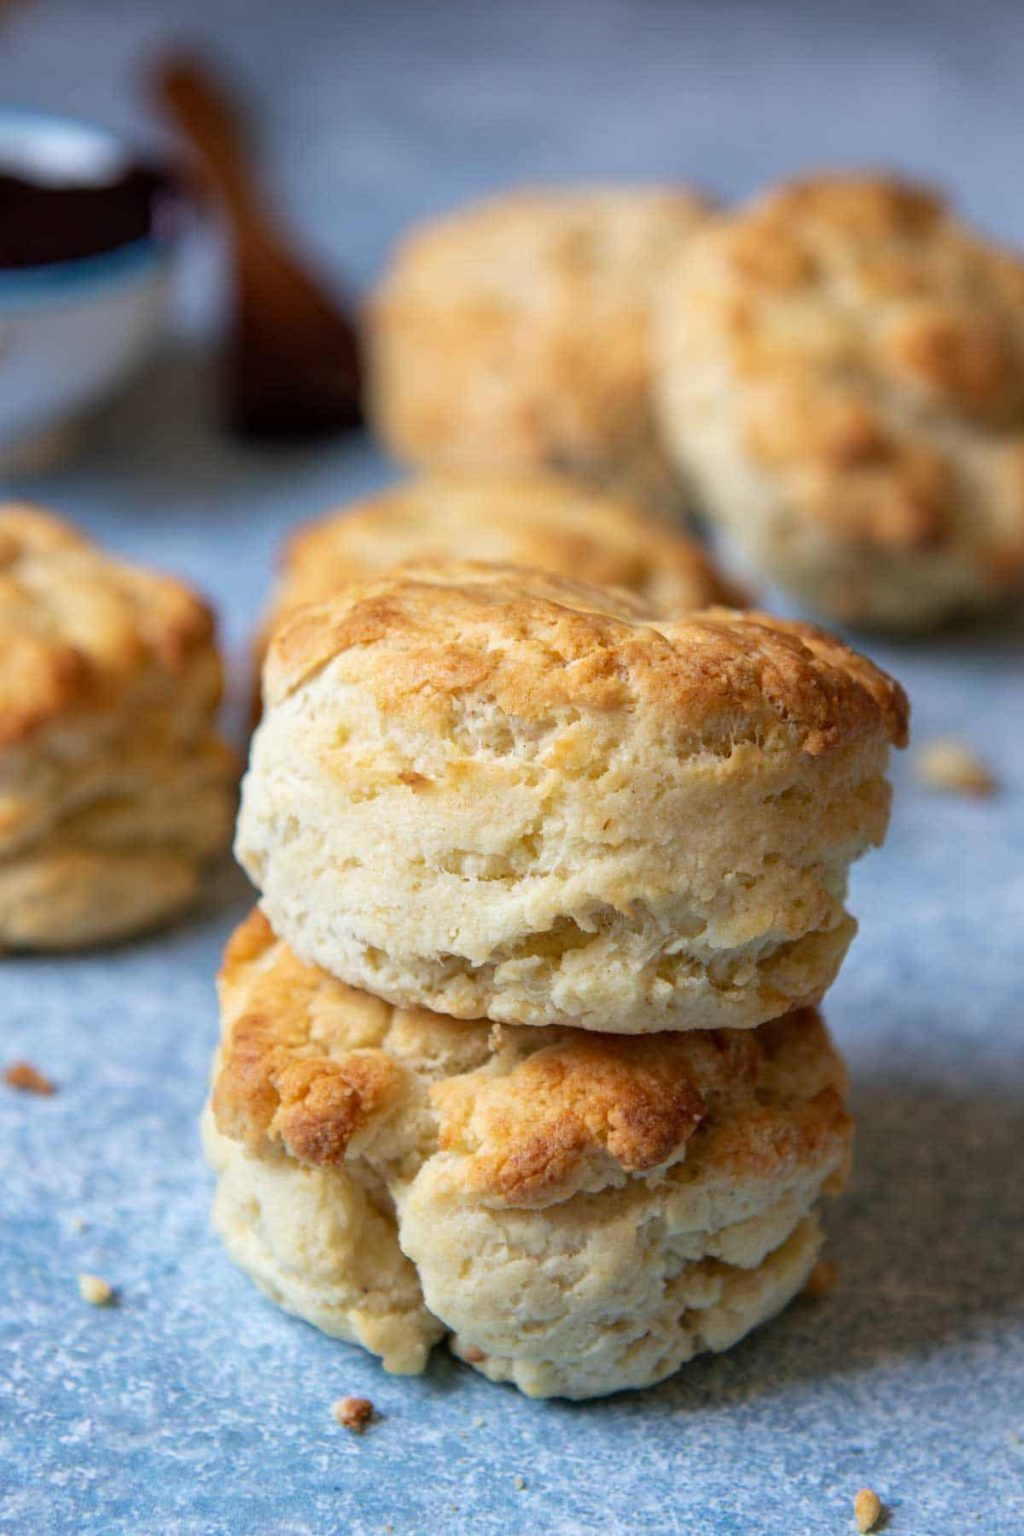 a stack of two gluten free biscuits with more biscuits laying around them